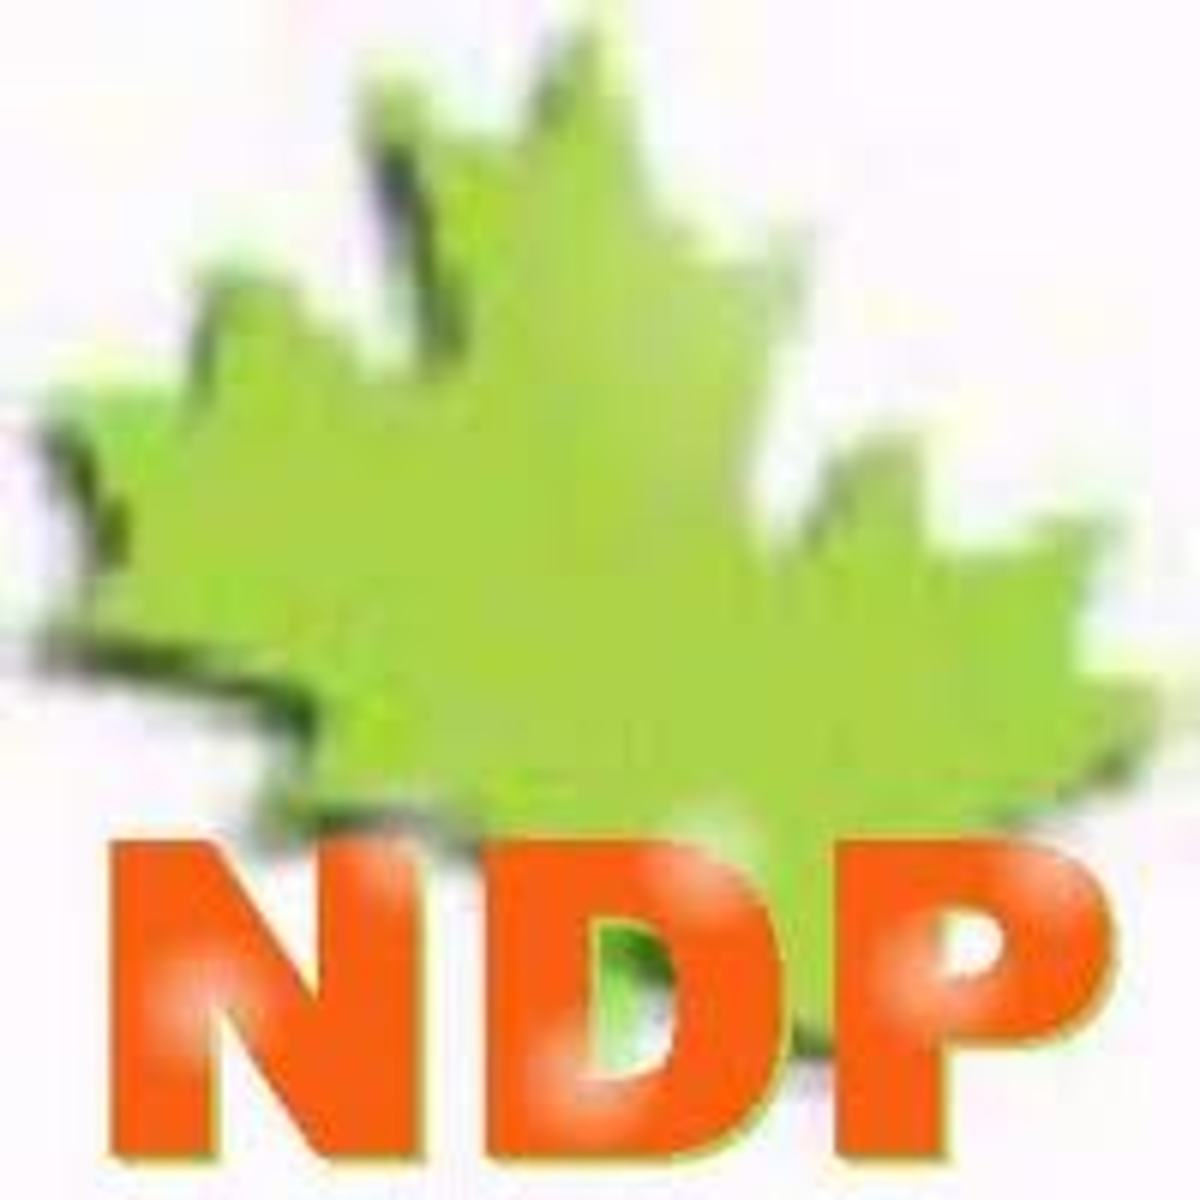 New Democratic Party of Canada